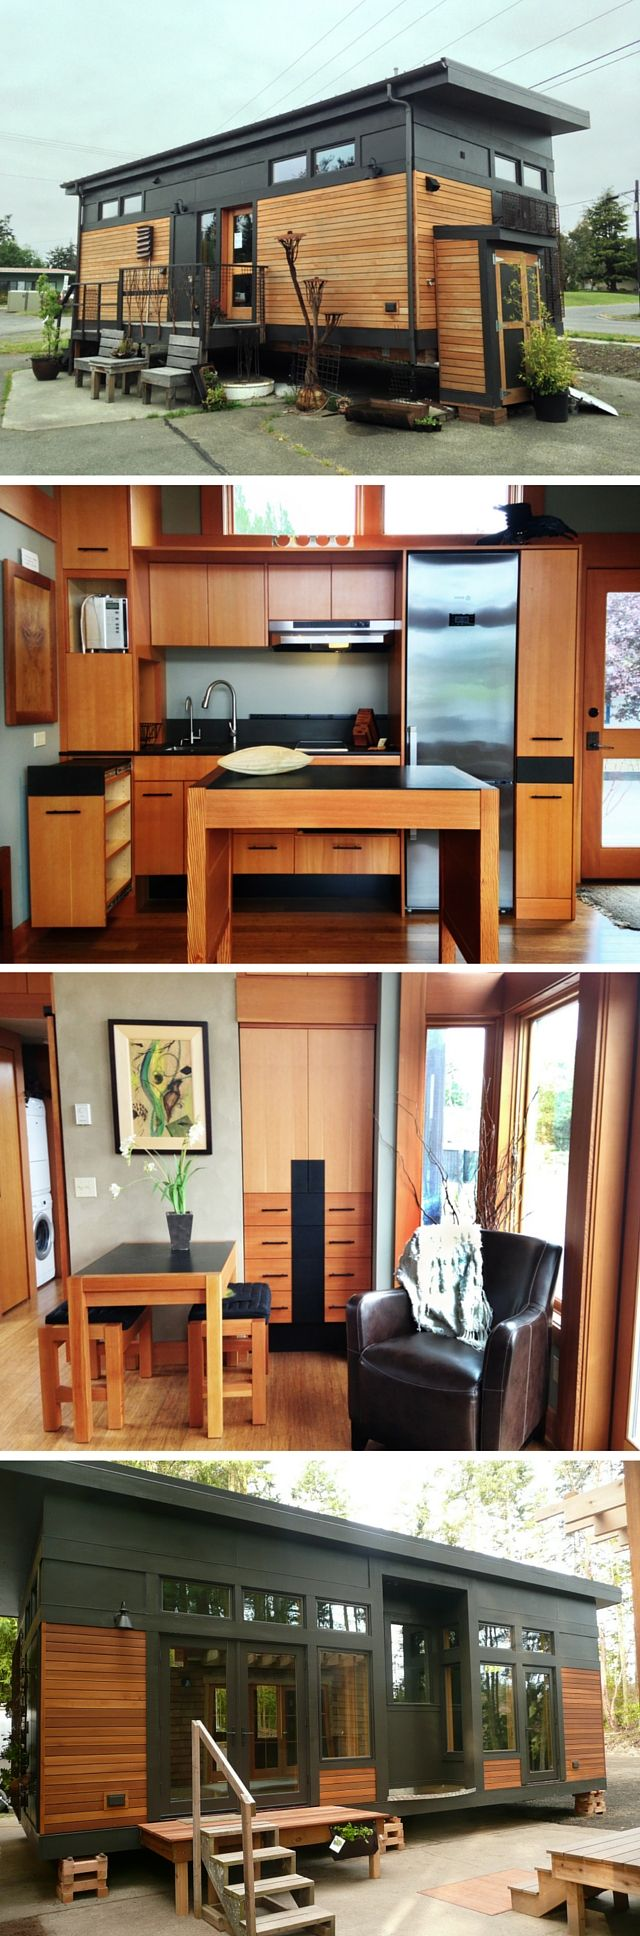 Can I Move In Tomorrow? Just Lovin This Model! A 450 Sq Ft Tiny House Named  The Waterhaus. One Of The Most Beautiful Tiny House Interiors Iu0027ve Seen